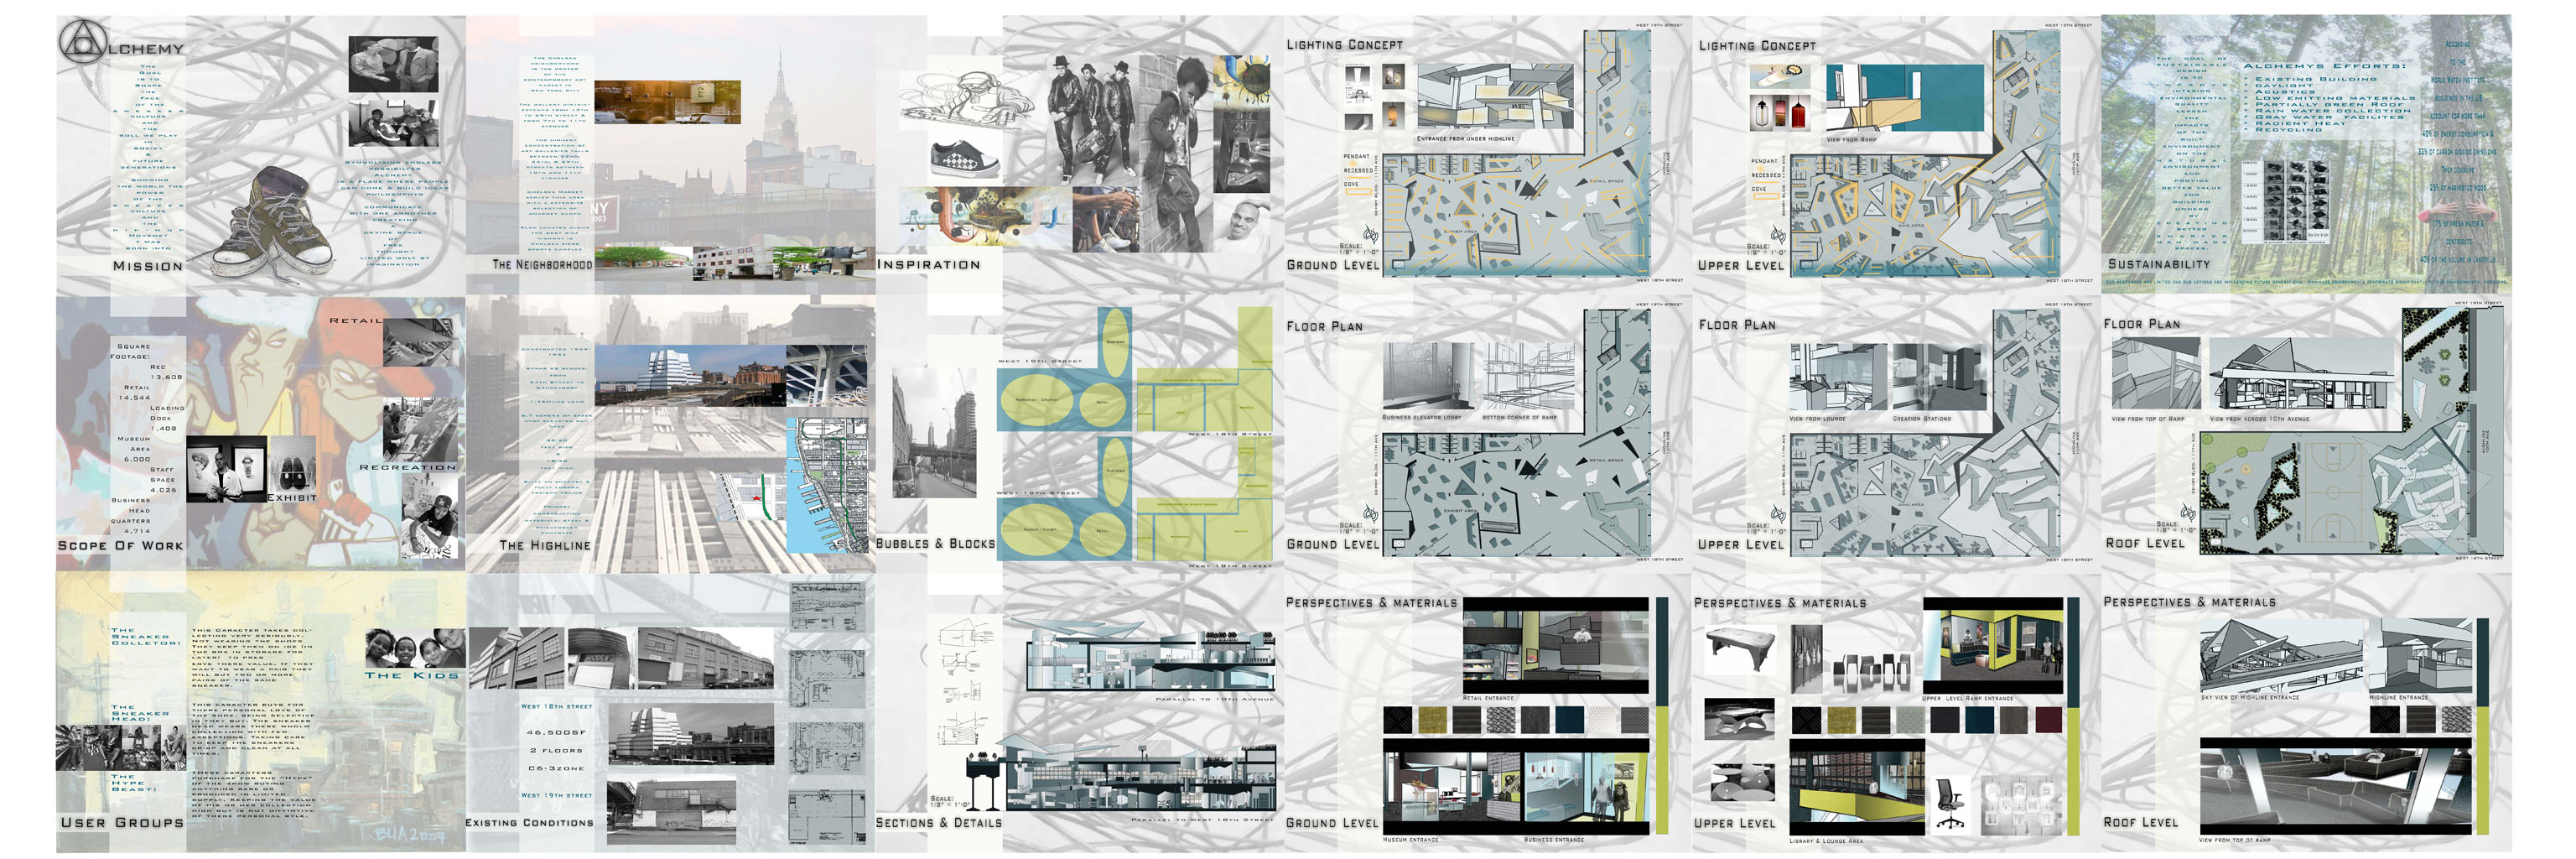 best thesis projects in architecture Arch: 2013 master of architecture thesis projects how do architecture and water interact with each other this question was addressed by a series of 2013 thesis projects by students in the master of architecture program at uc berkeley.